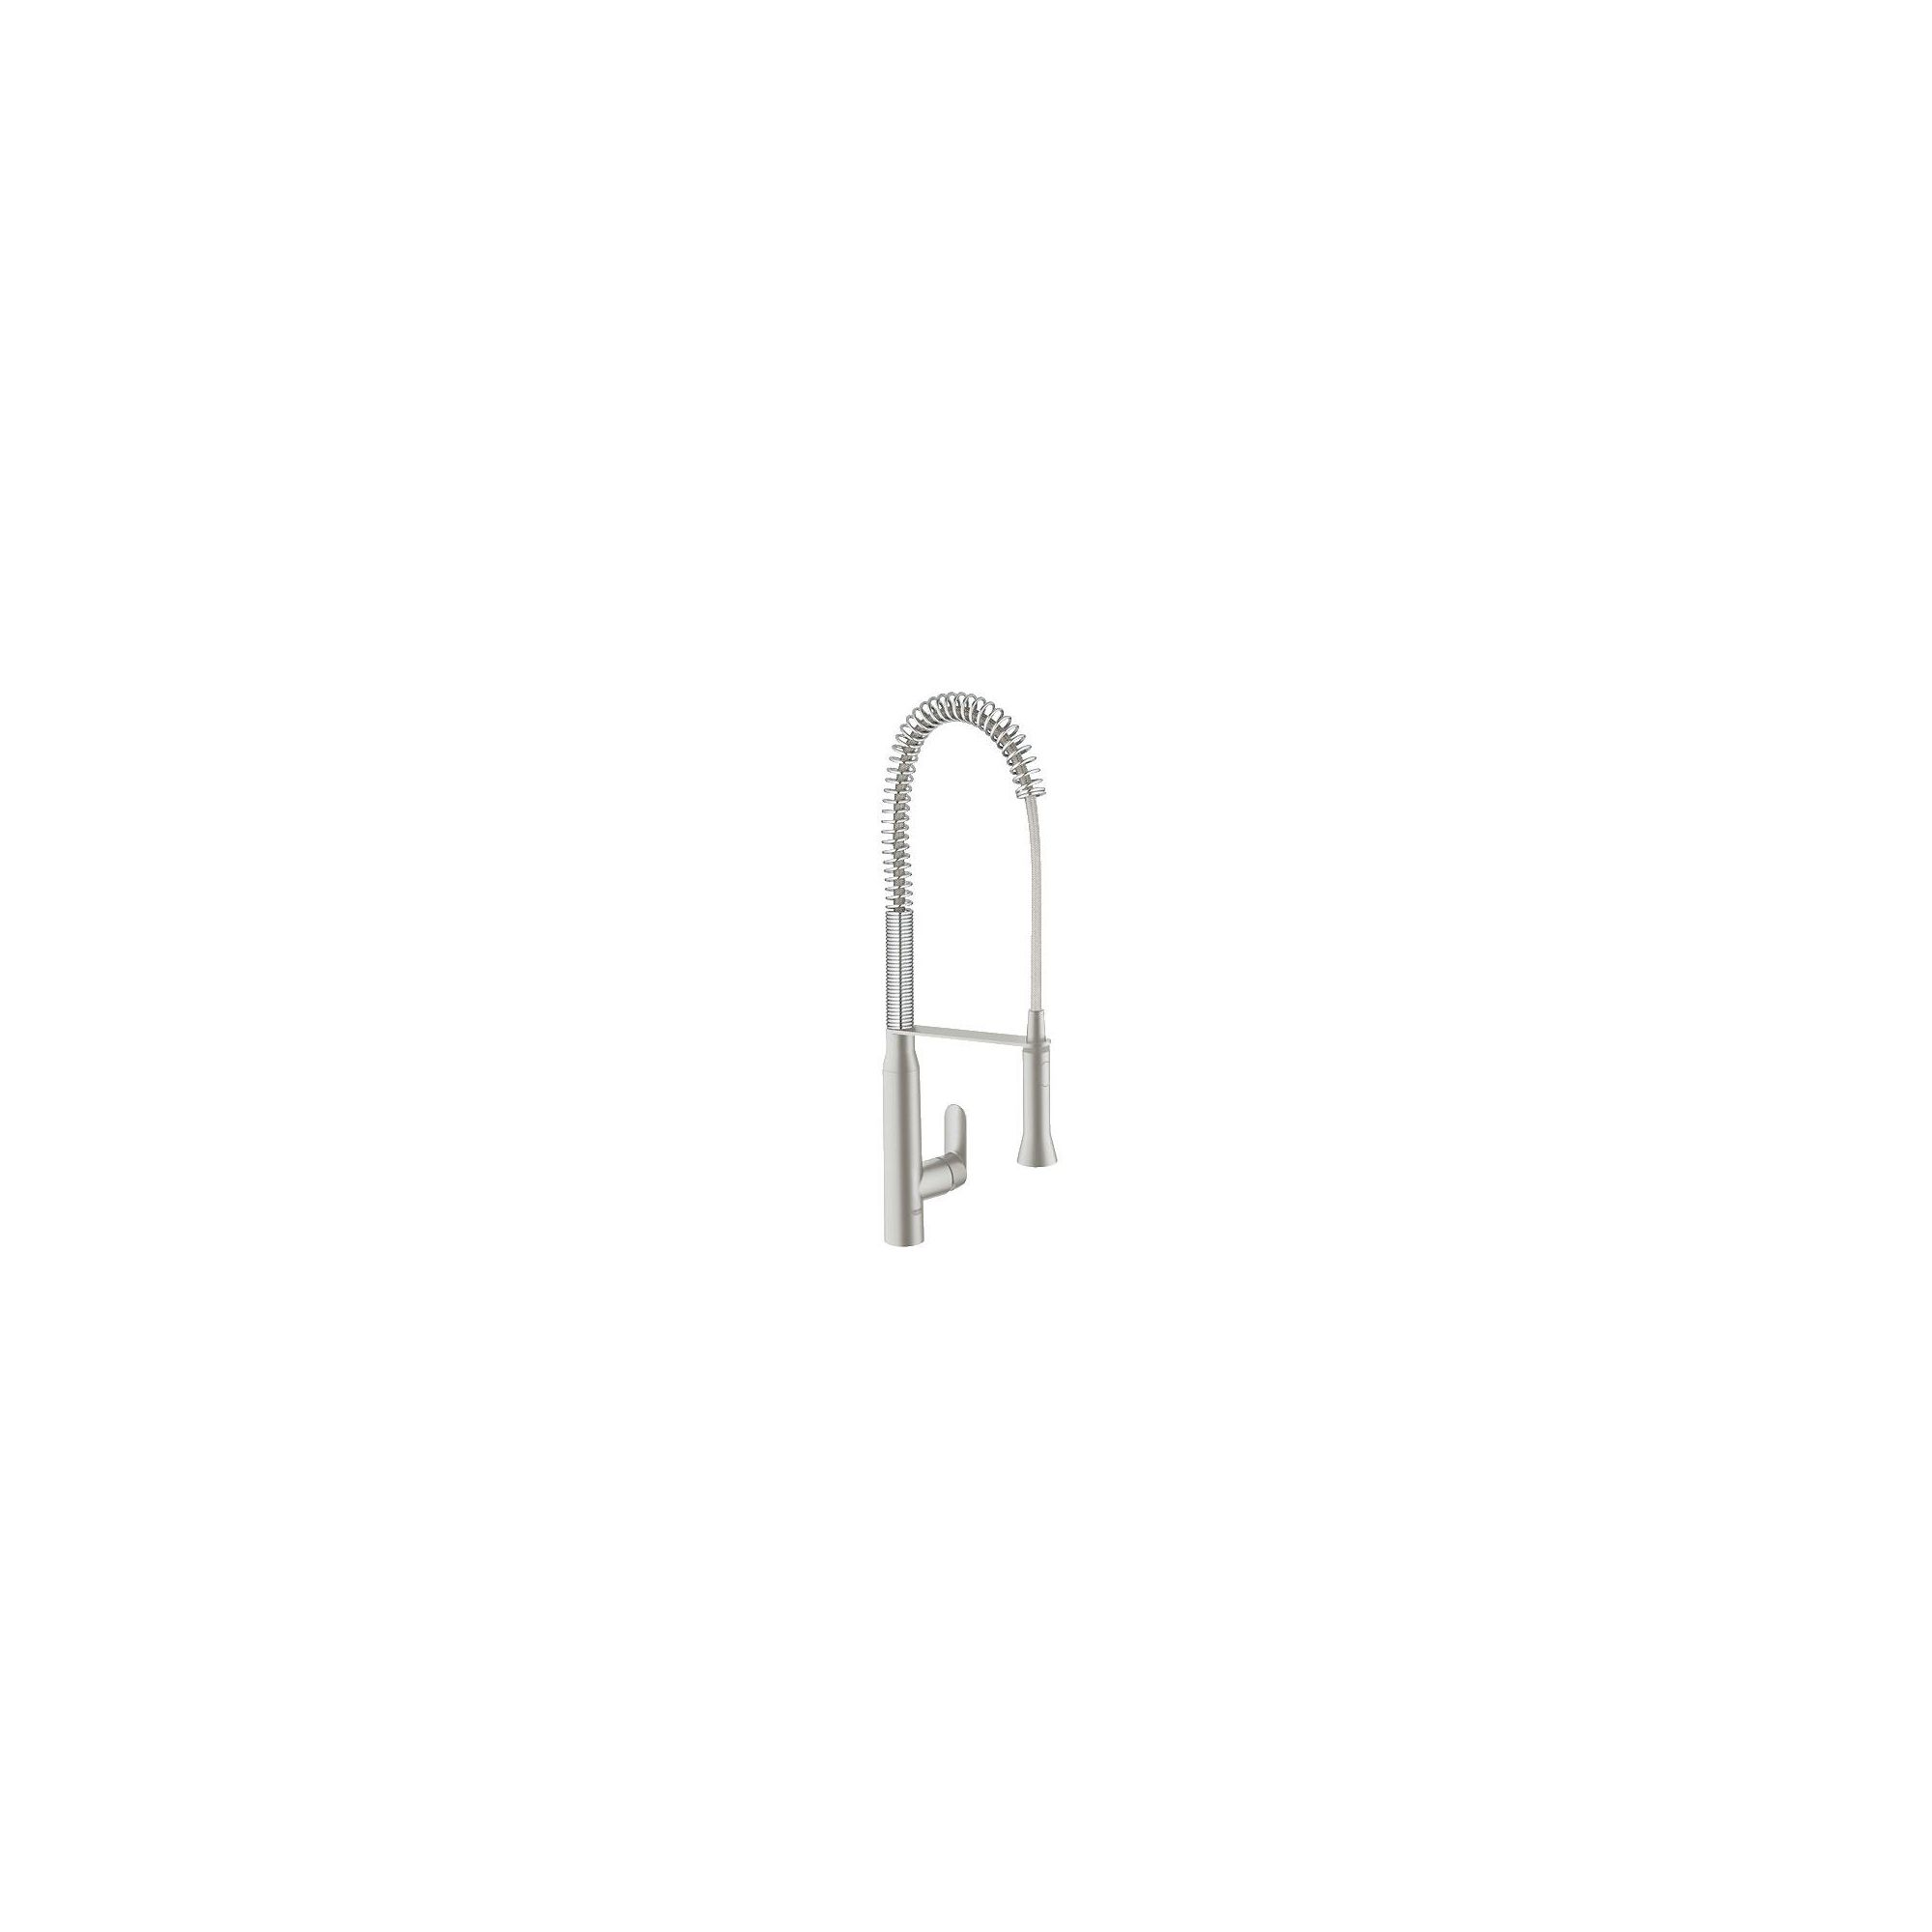 Grohe K7 Professional Mono Sink Mixer Tap, Single Handle, Stainless Steel at Tesco Direct